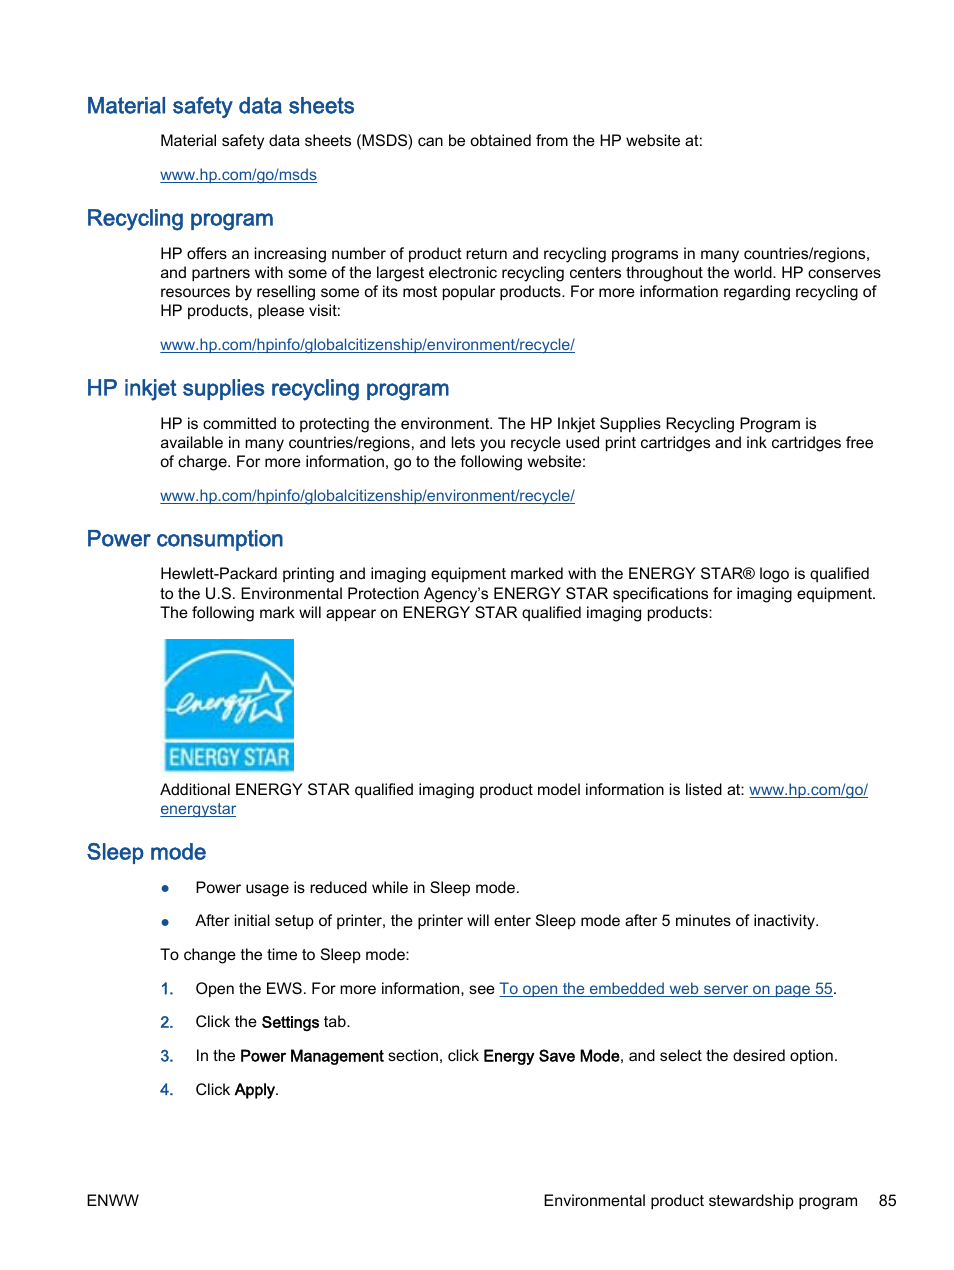 Material safety data sheets, Recycling program, Hp inkjet